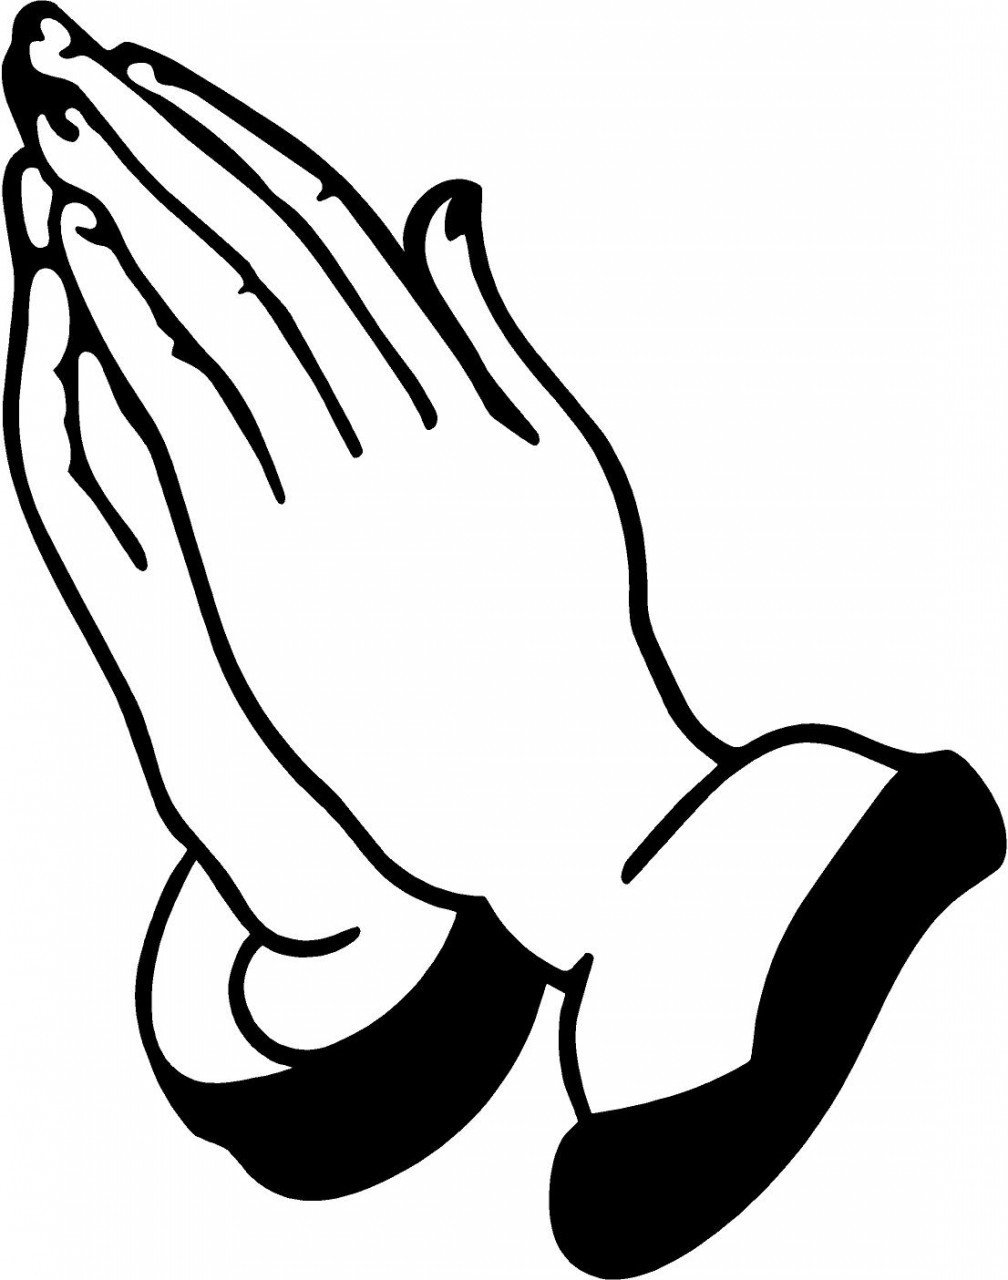 1008x1280 Praying Hands With Rosary Clip Art Clipart